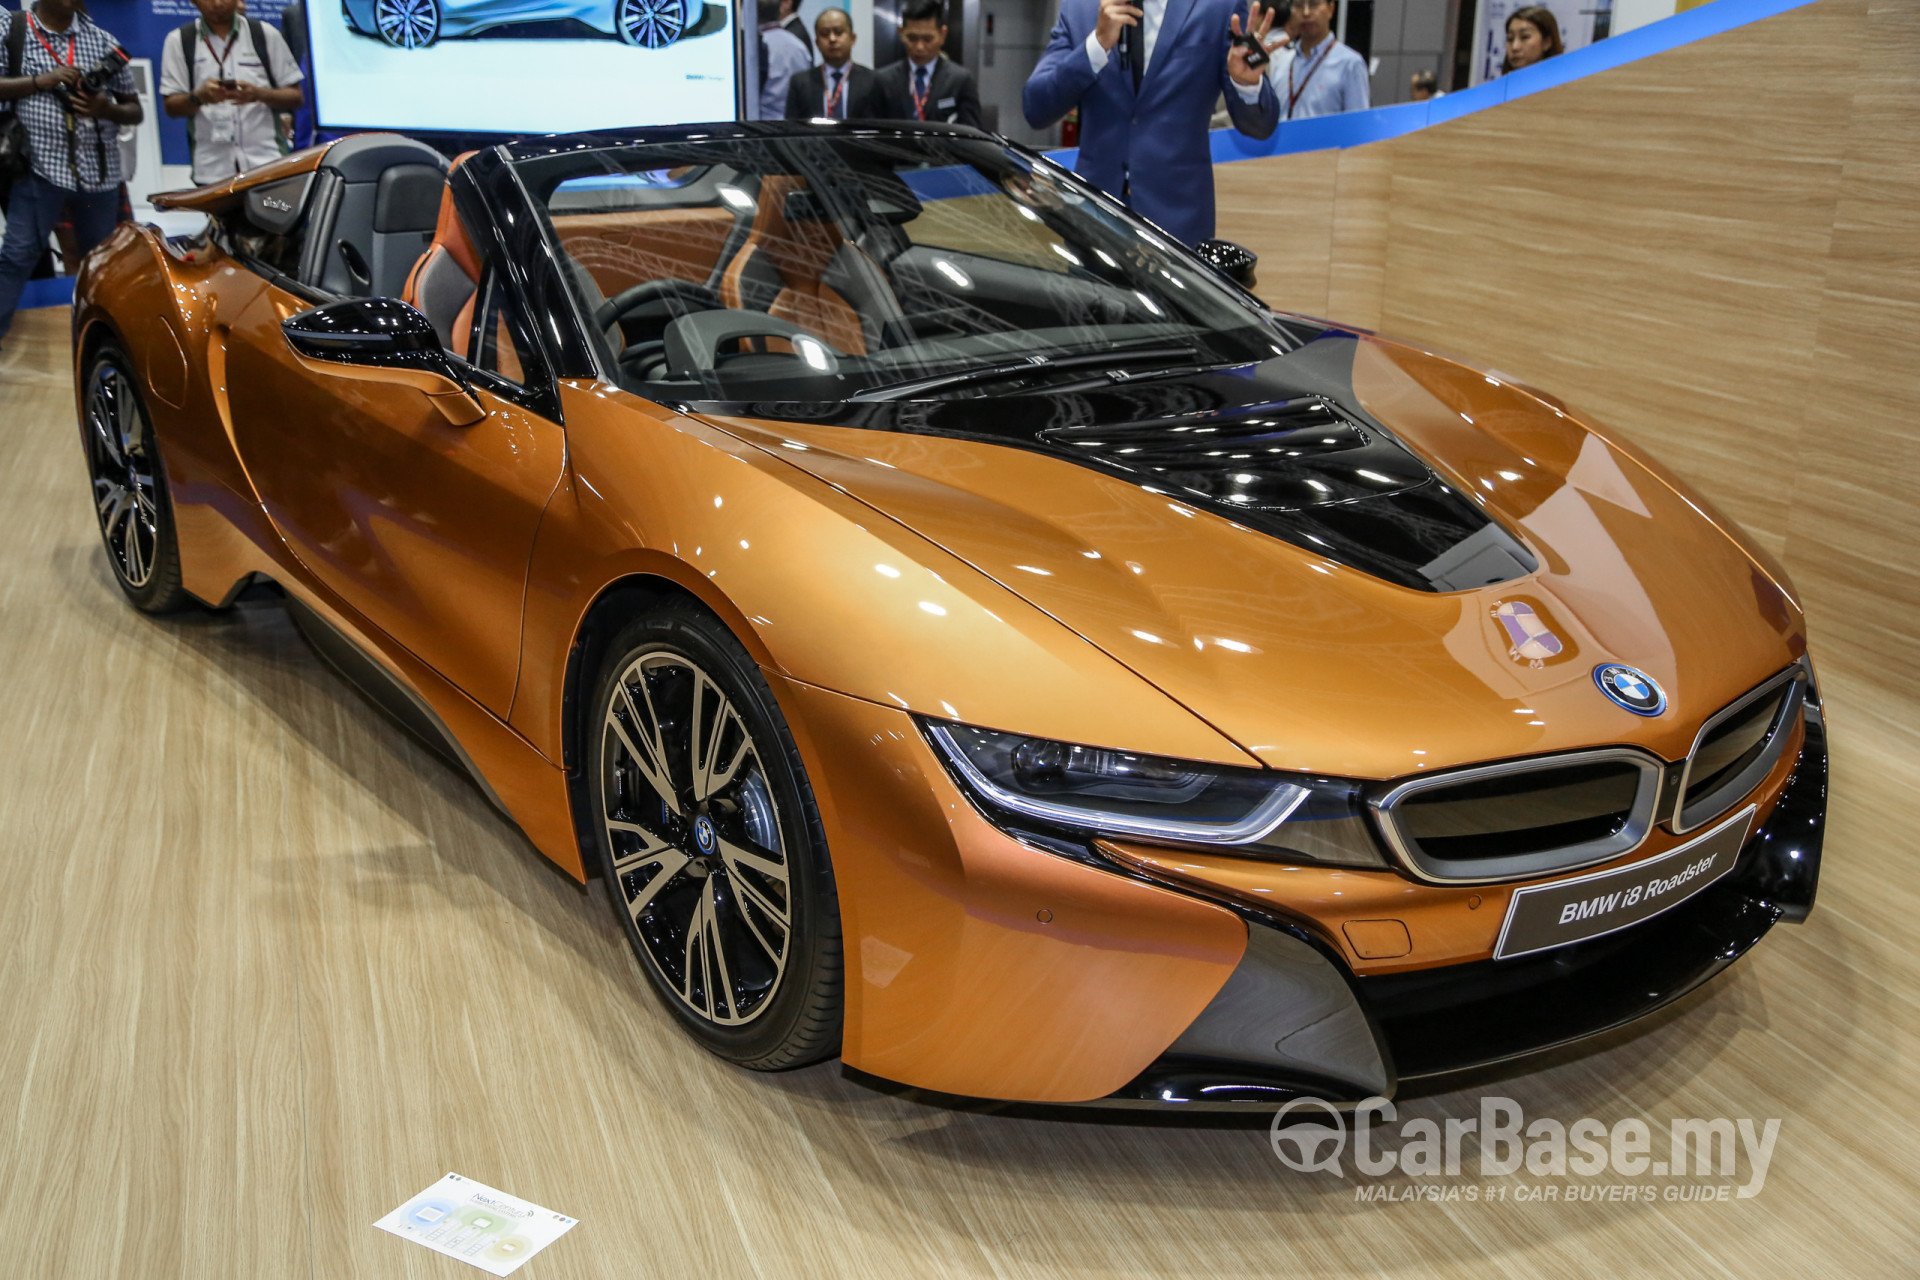 Bmw I8 Roadster I12 Lci 2018 Exterior Image In Malaysia Reviews